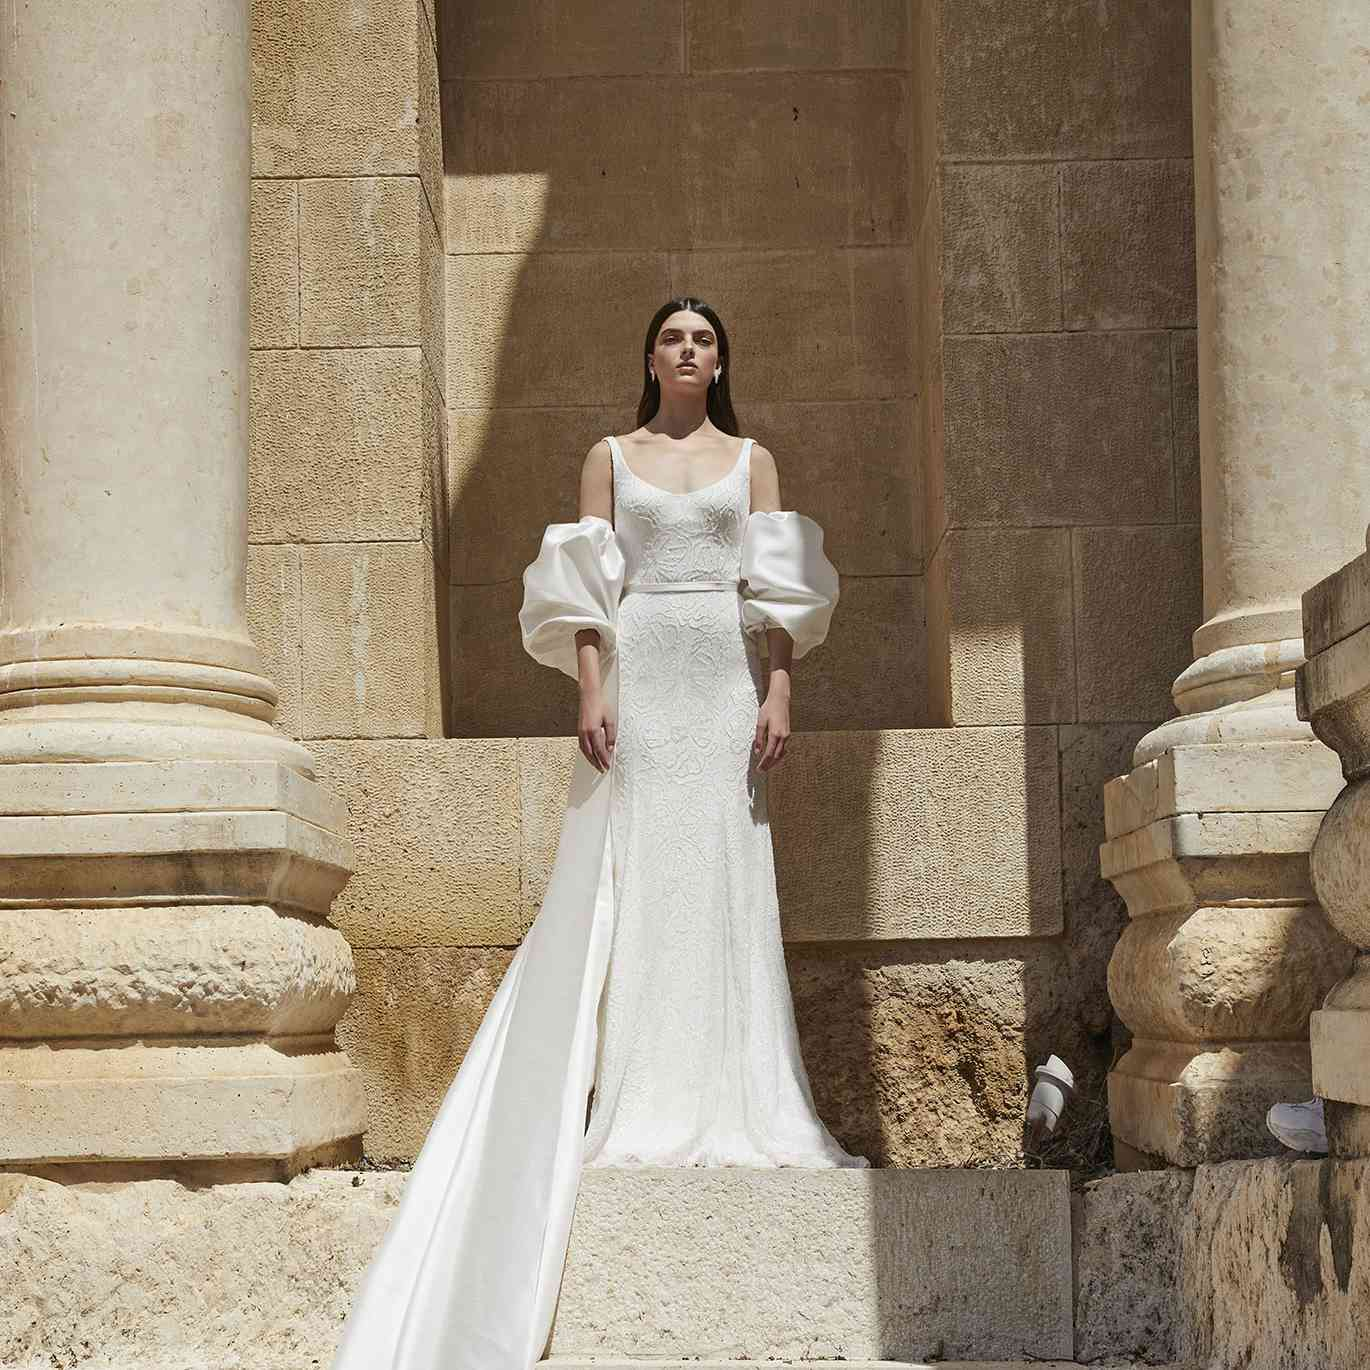 White gown and coat